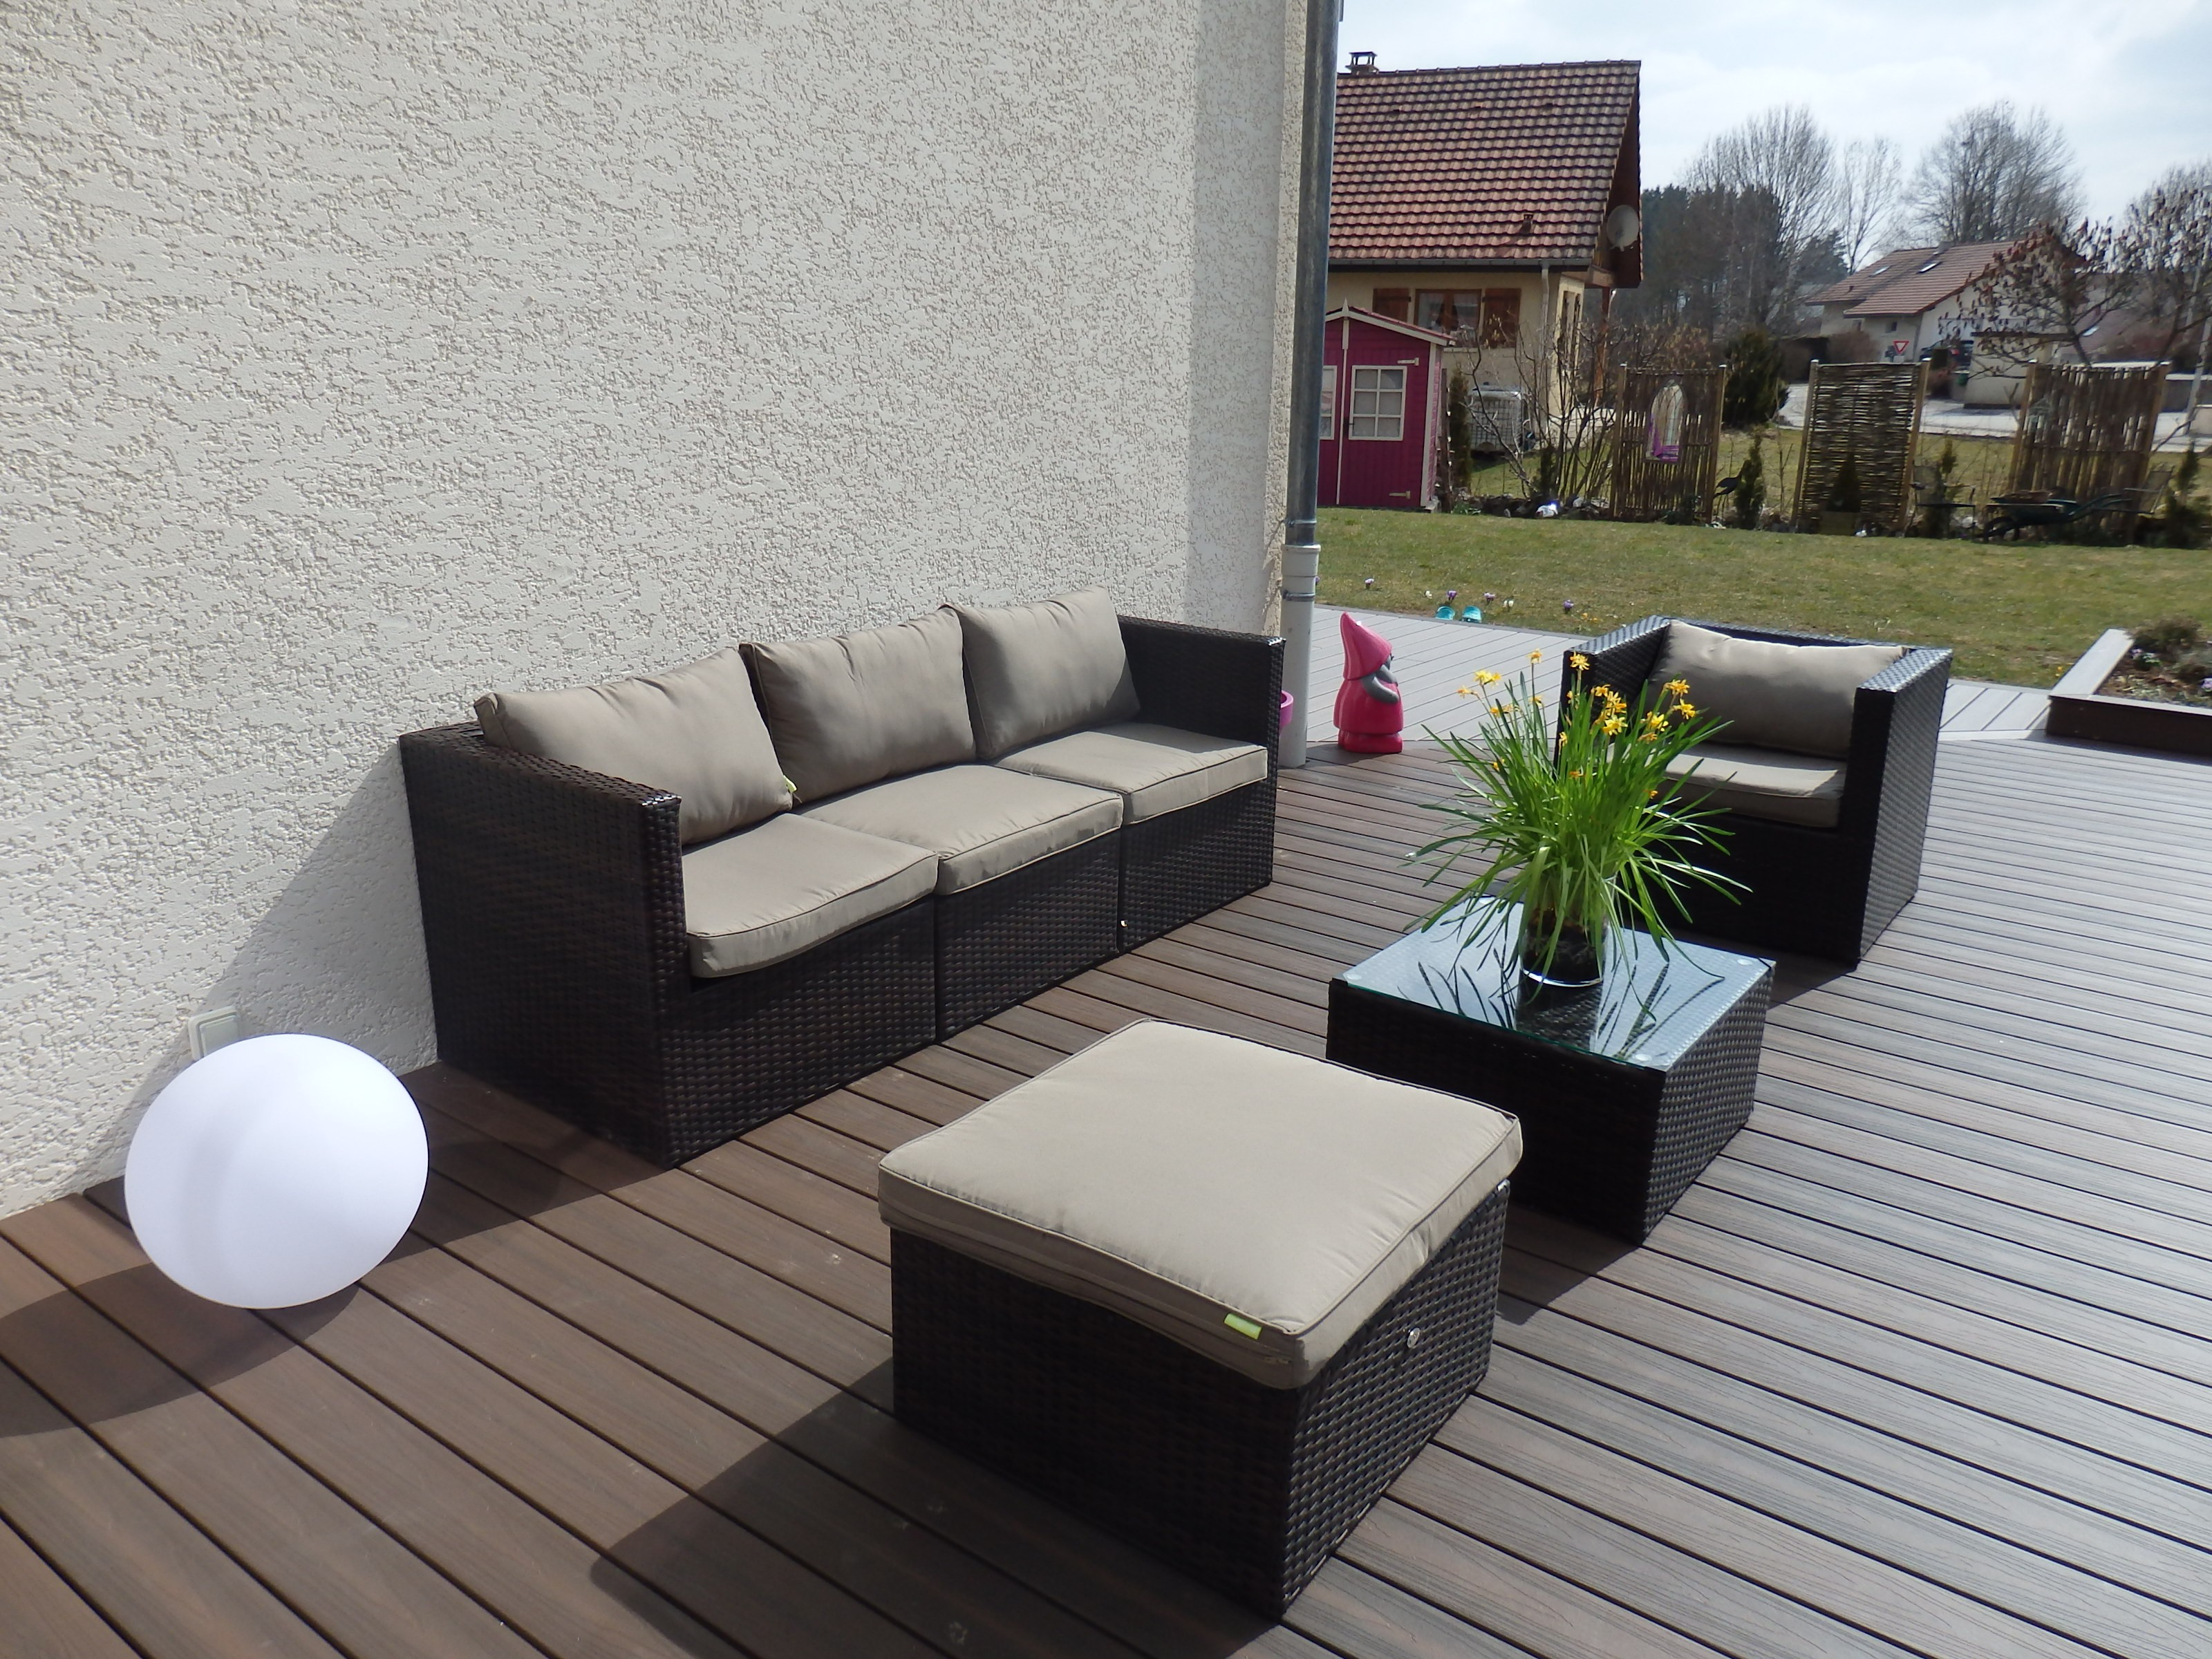 Salon de jardin resine solde royal sofa id e de canap for Solde meuble salon